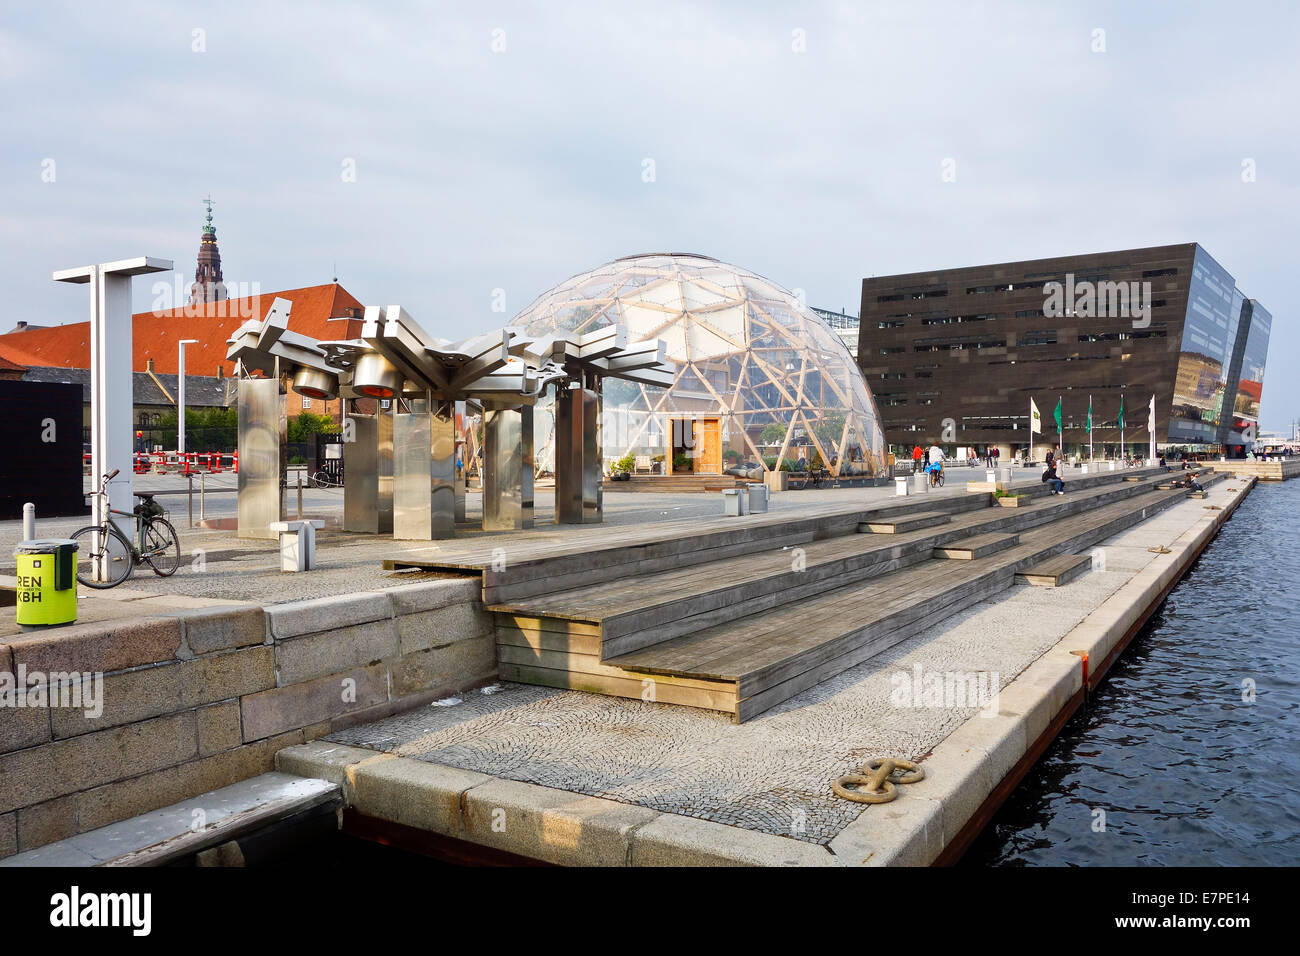 Newly built Dome of Visions in front of the Royal Library on Søren Kierkegaards Plads in Copenhagen Denmark - Stock Image